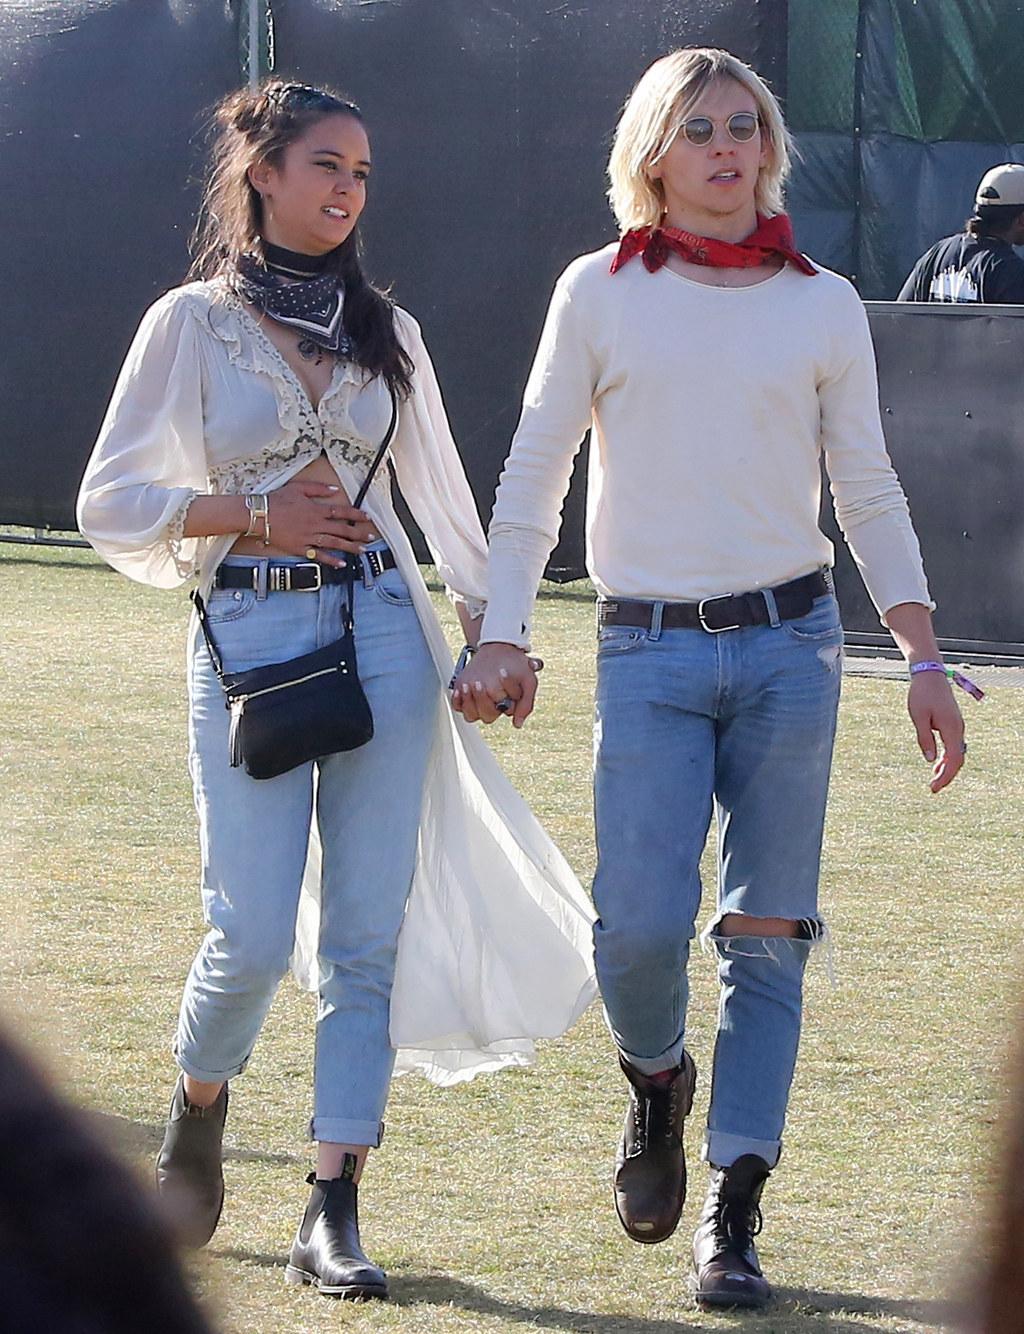 who is ross from r5 dating Born on december 29, 1995, ross lynch is an american singer, actor and songwriter known for being a founding member of the pop rock band r5, he is also.